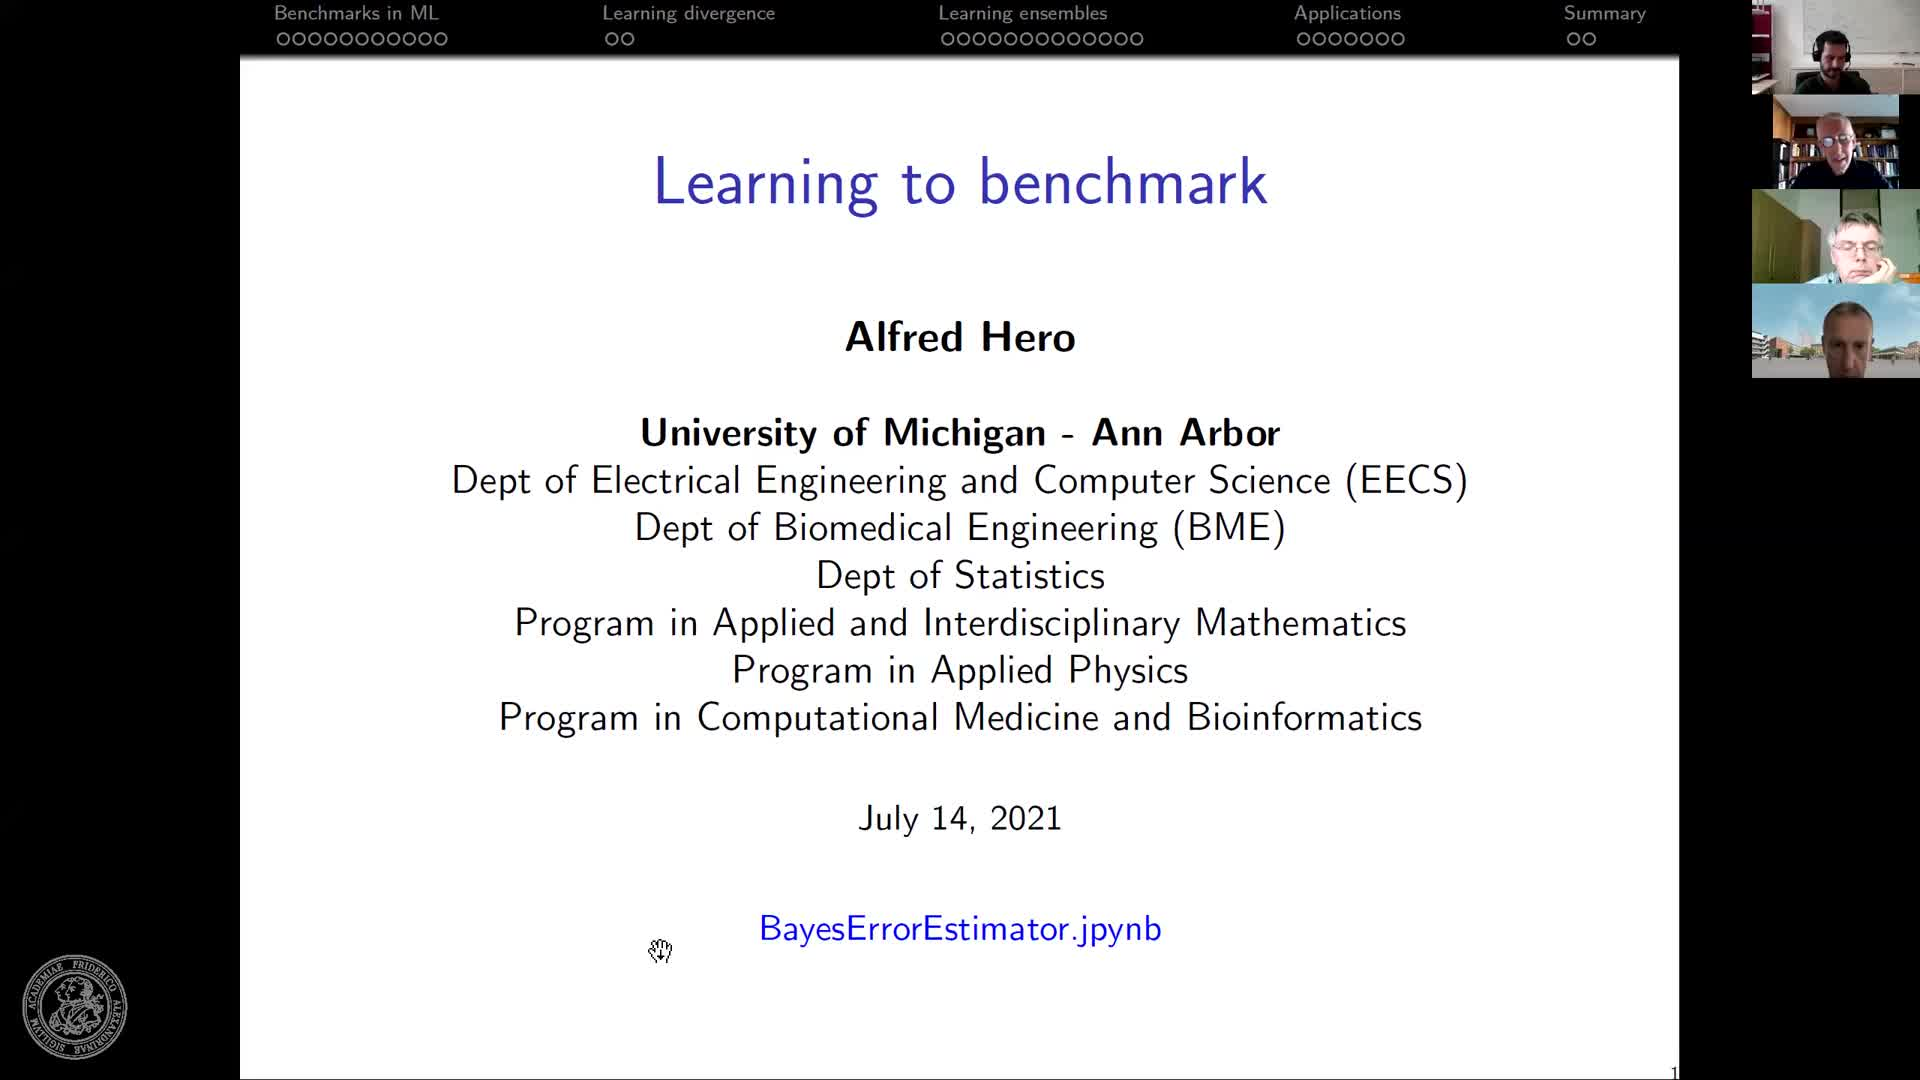 Learning to benchmark (A. Hero, University of Michigan, USA) preview image